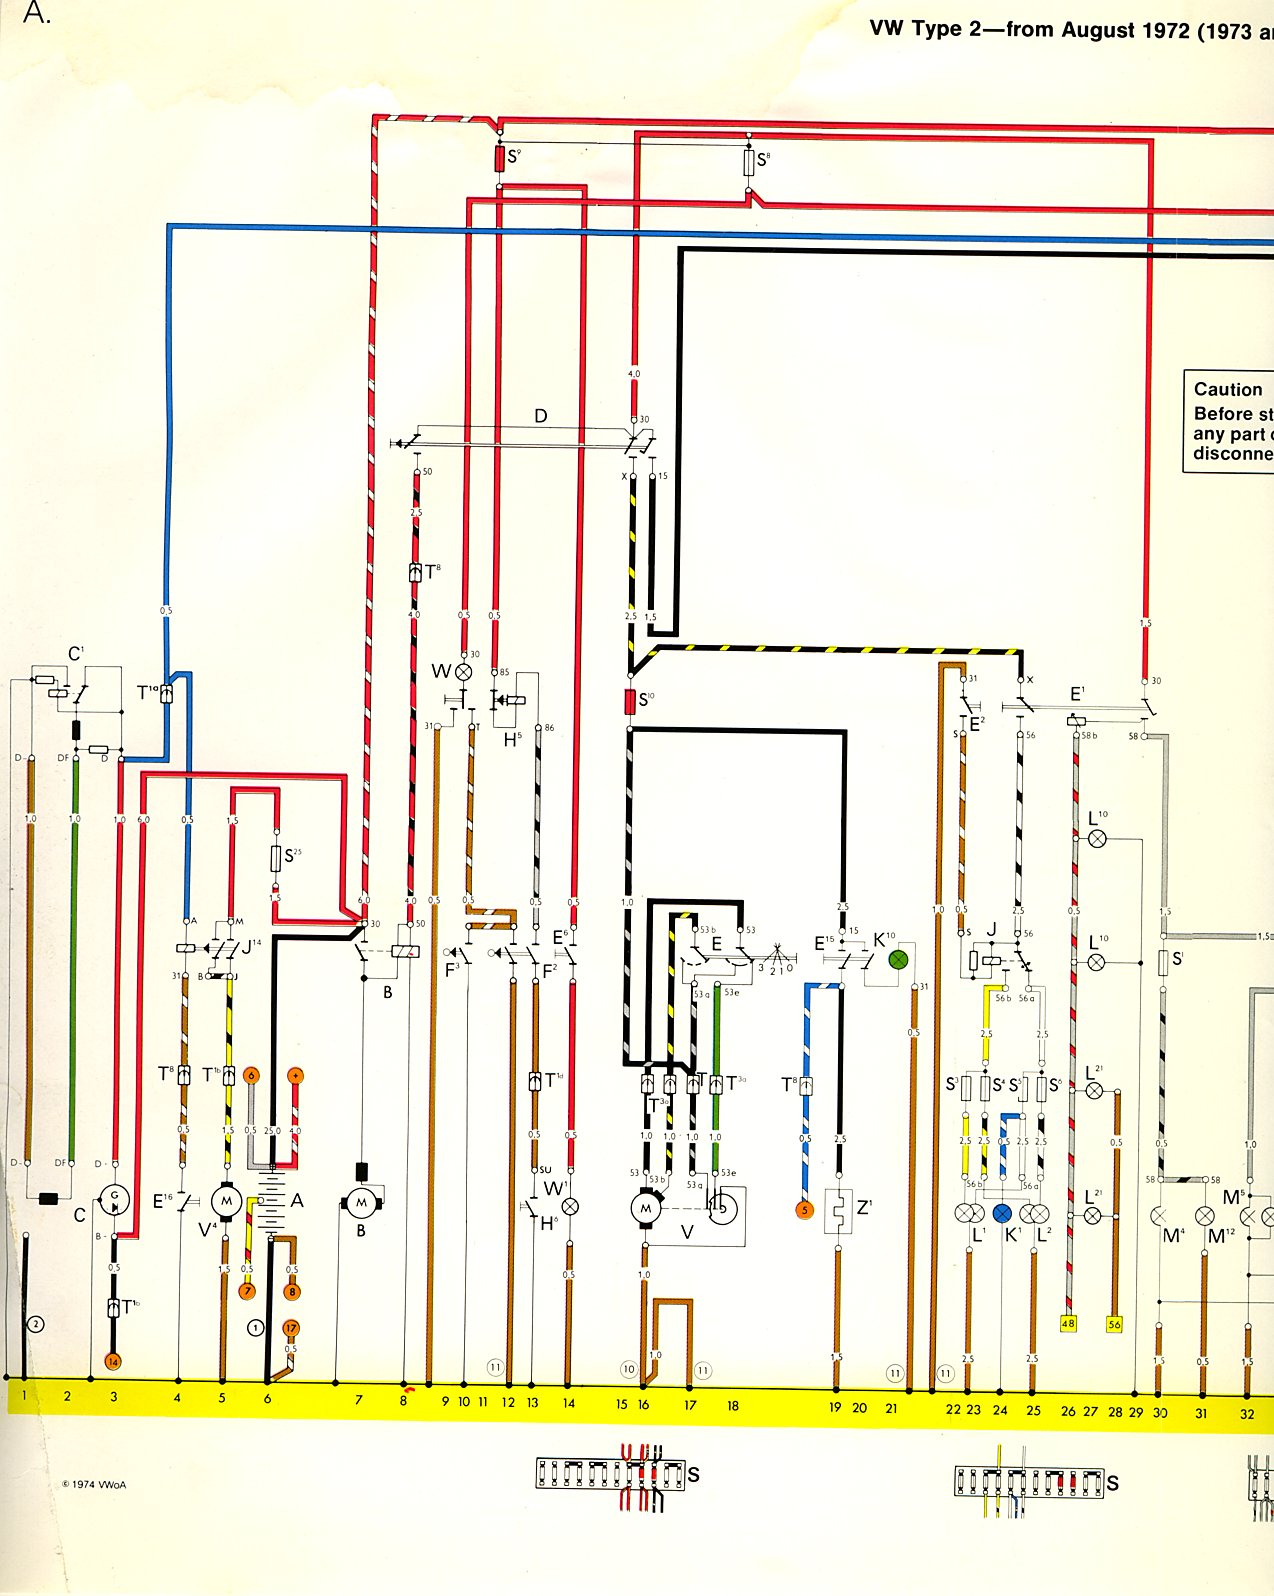 1973 vw bus wiring diagram wiring diagram \u2022 67 vw beetle wiring diagram 1973 74 bus wiring diagram thegoldenbug com rh thegoldenbug com 70 vw wiring diagram 68 vw